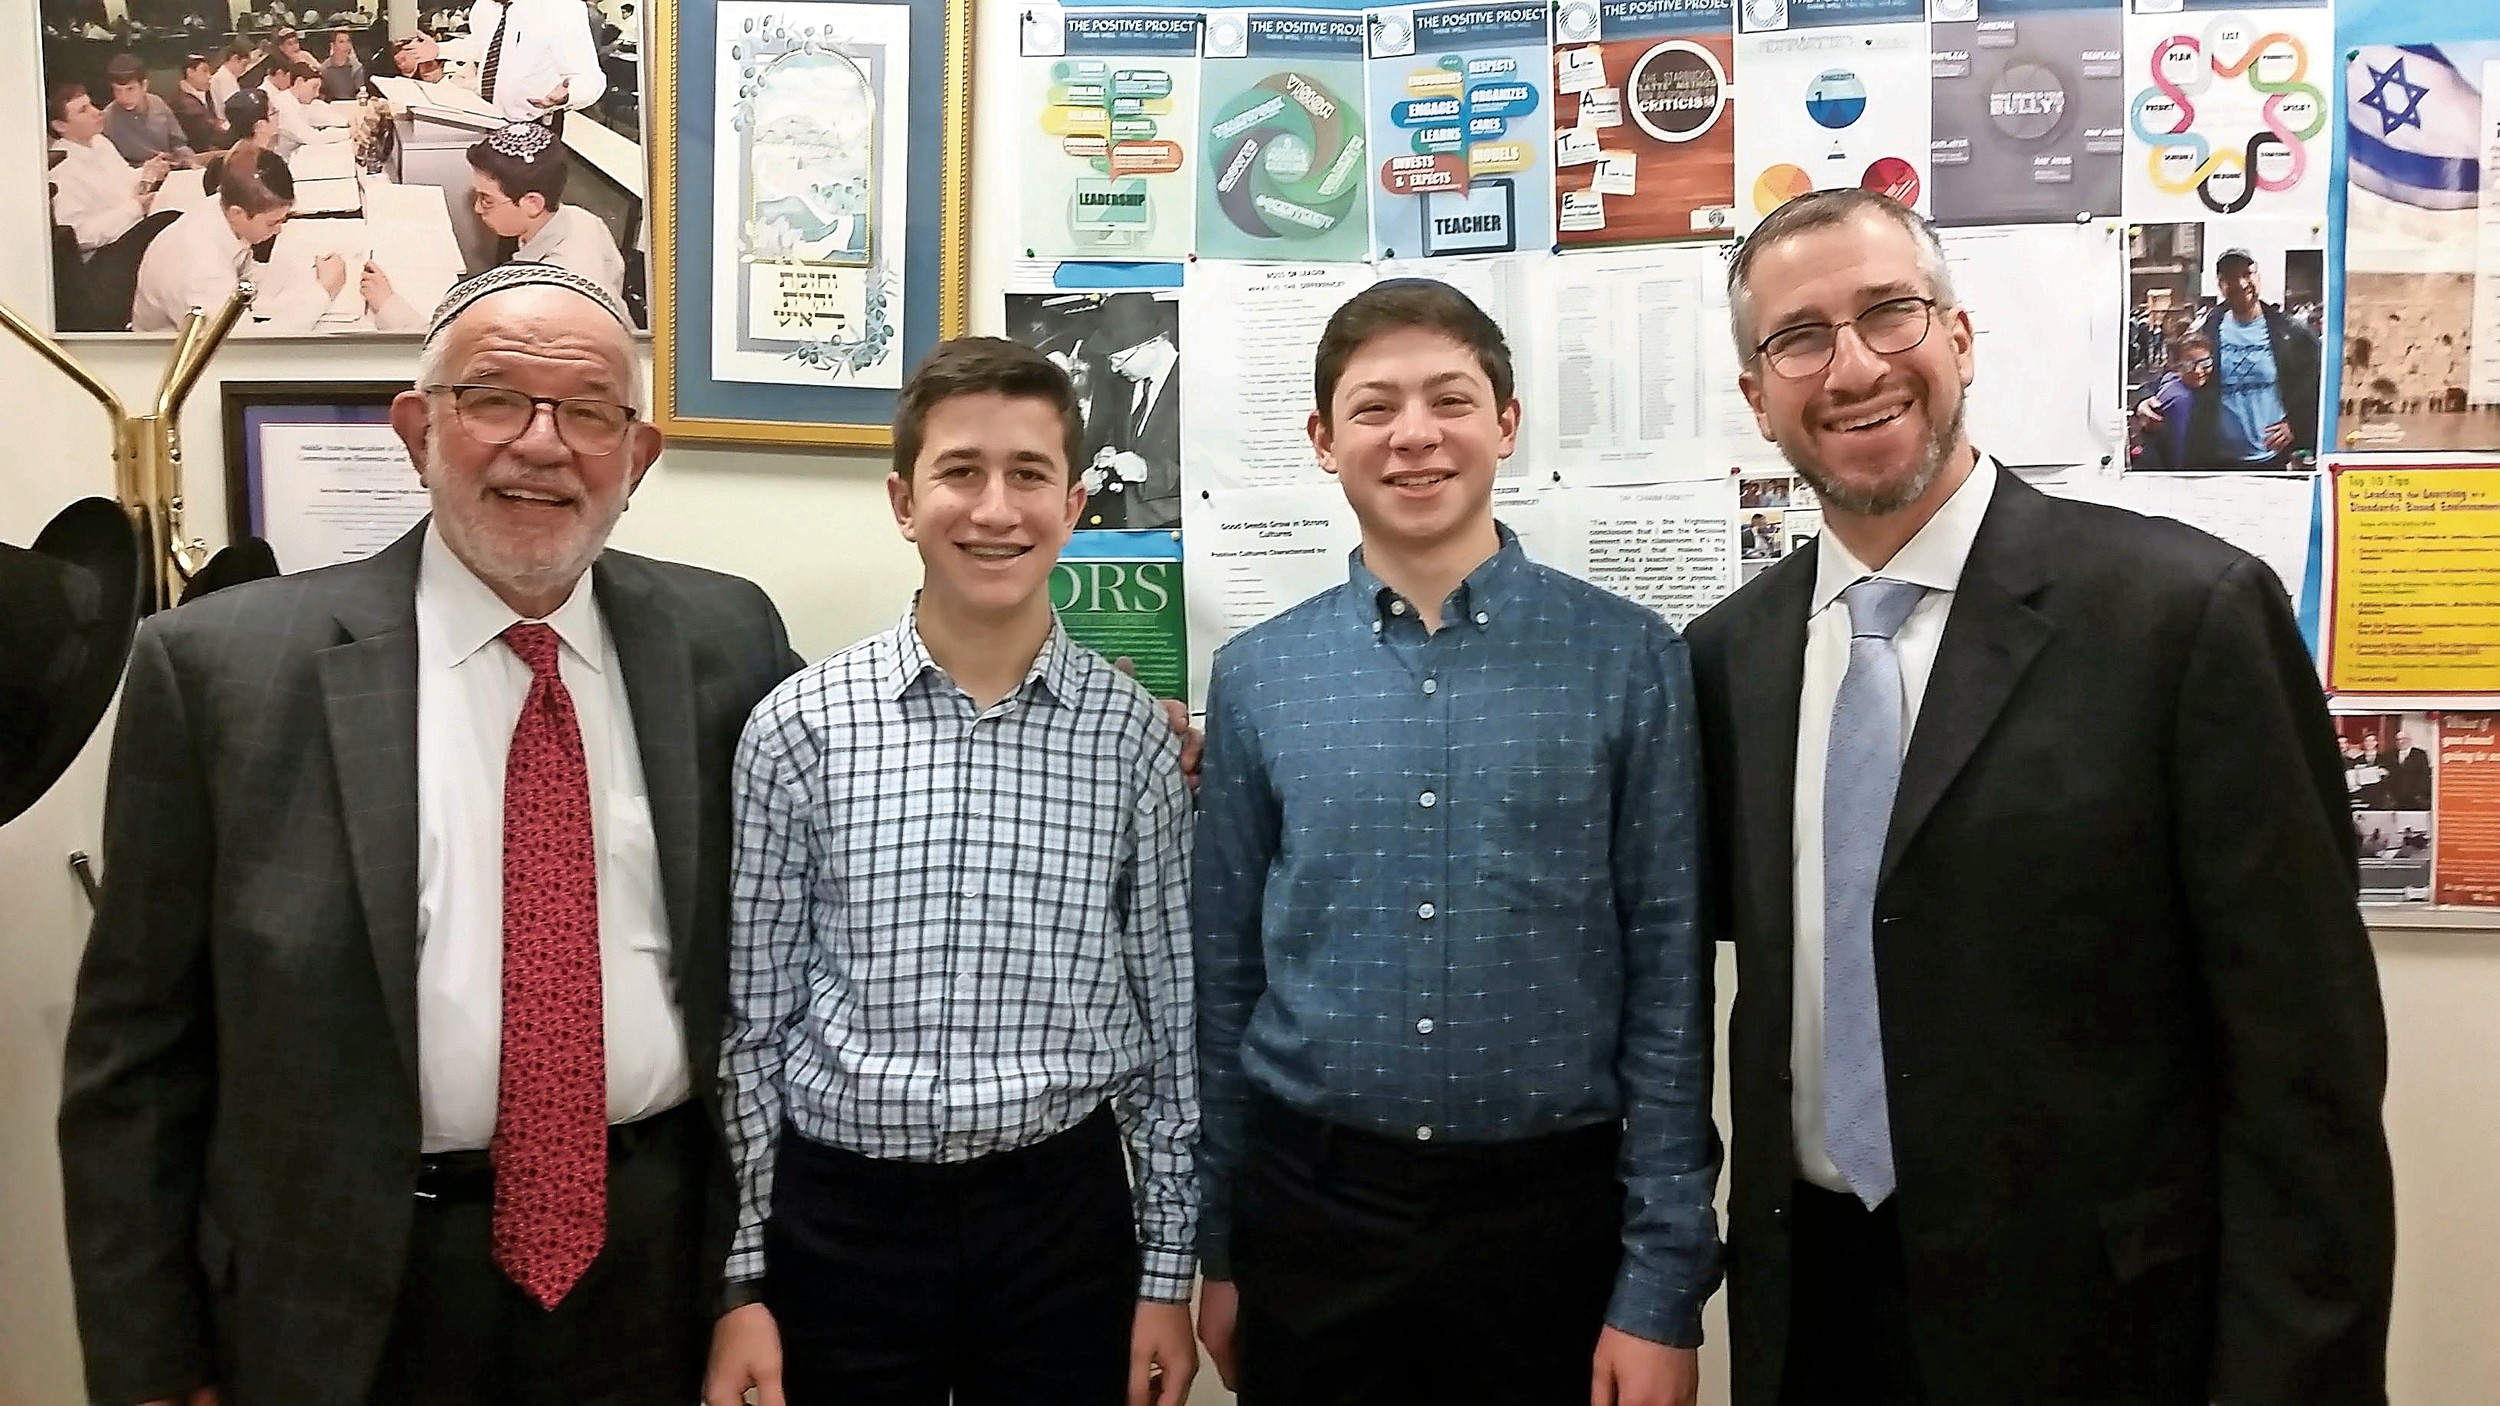 DRS juniors Aaron Singer and Uri Ash finished first and fifth, respectively, in the National Jerusalem Science Contest. From left were Rabbi Yisroel Kaminetsky, Singer, Ash, Singer, Ash, and Principal Dr. Gerald Kirshenbaum.